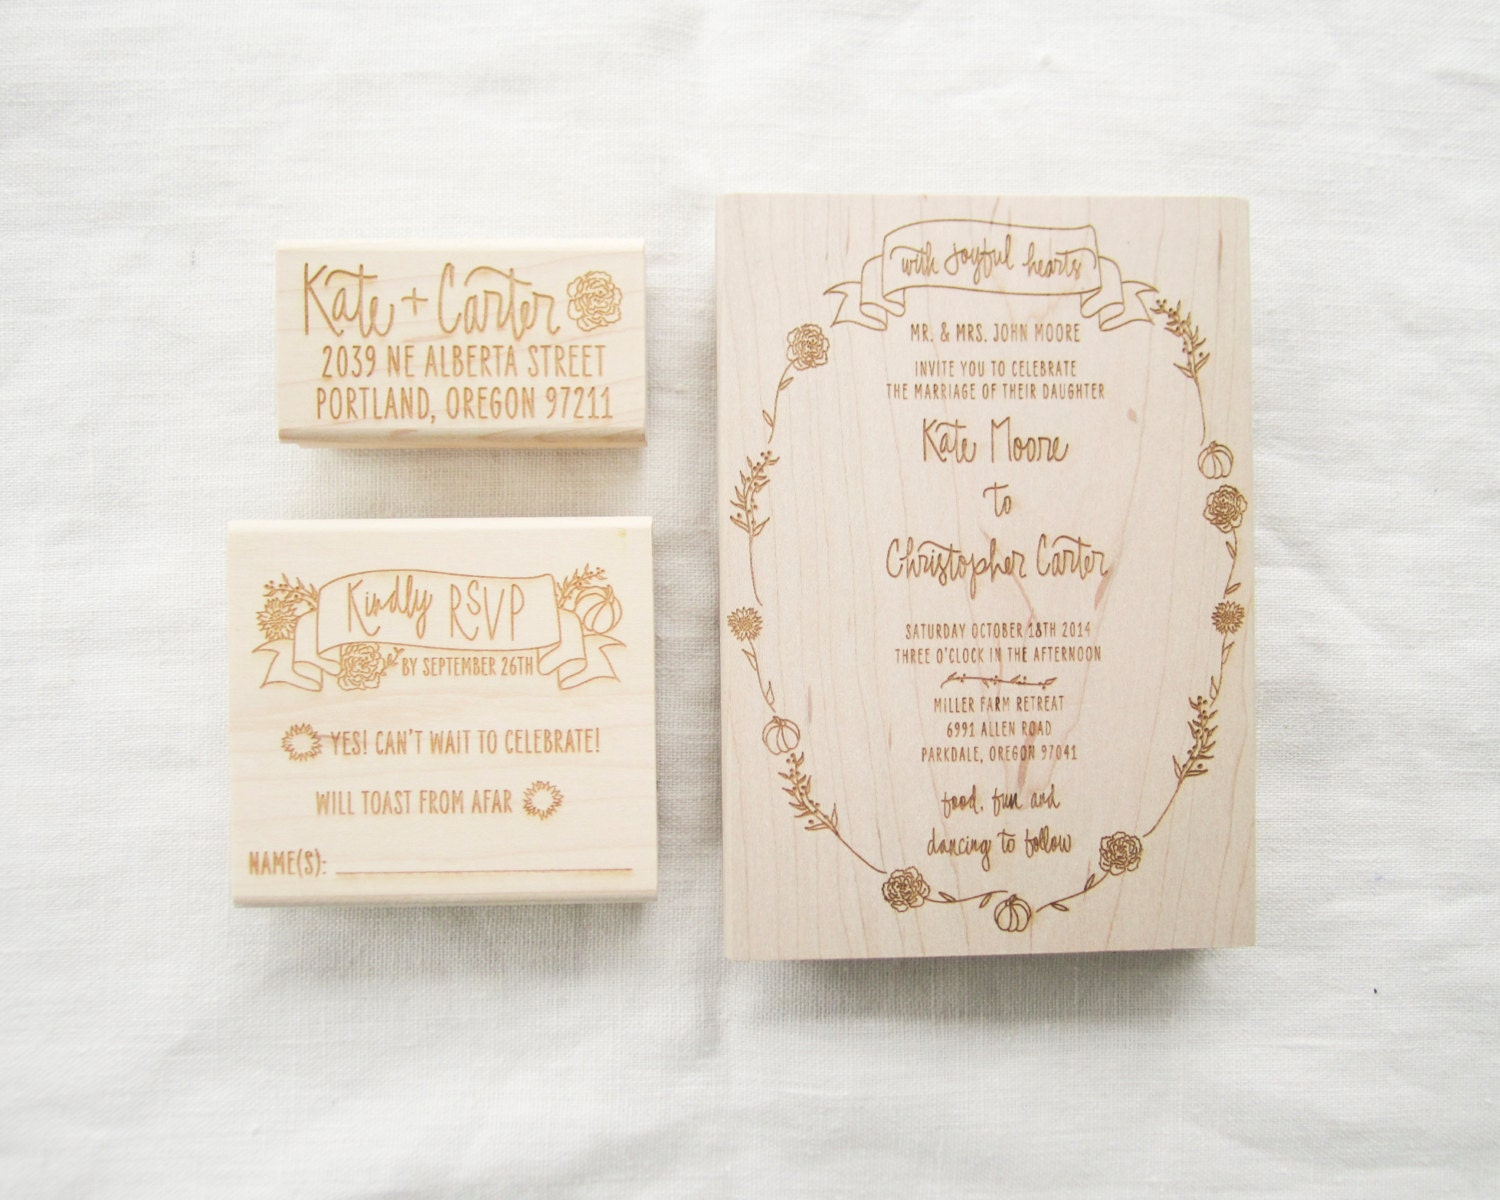 Stamps For Wedding Invitations: Custom Wedding Invitation Stamp Suite Wedding By Papersushi